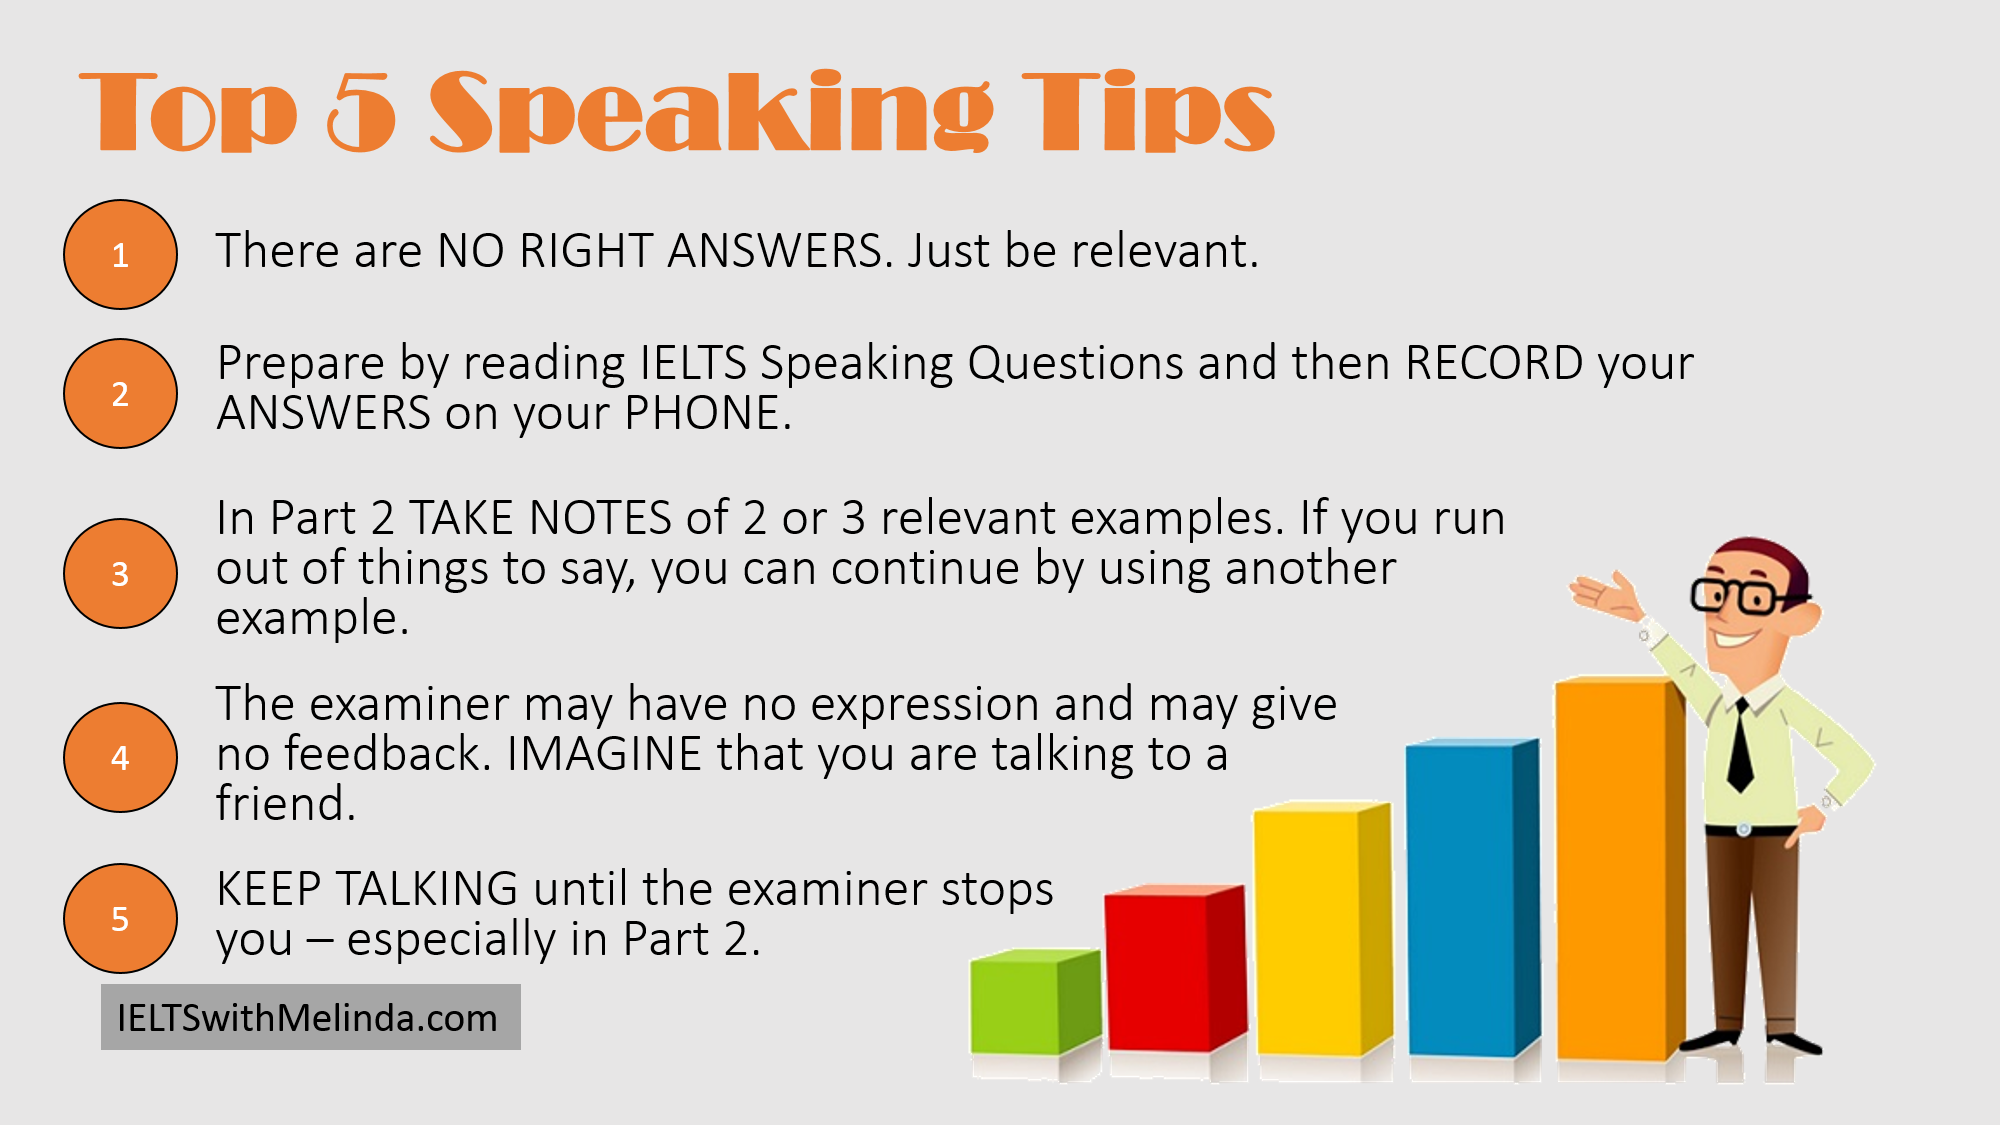 IELTS Writing Tips: How to Write 150 or 250 Words